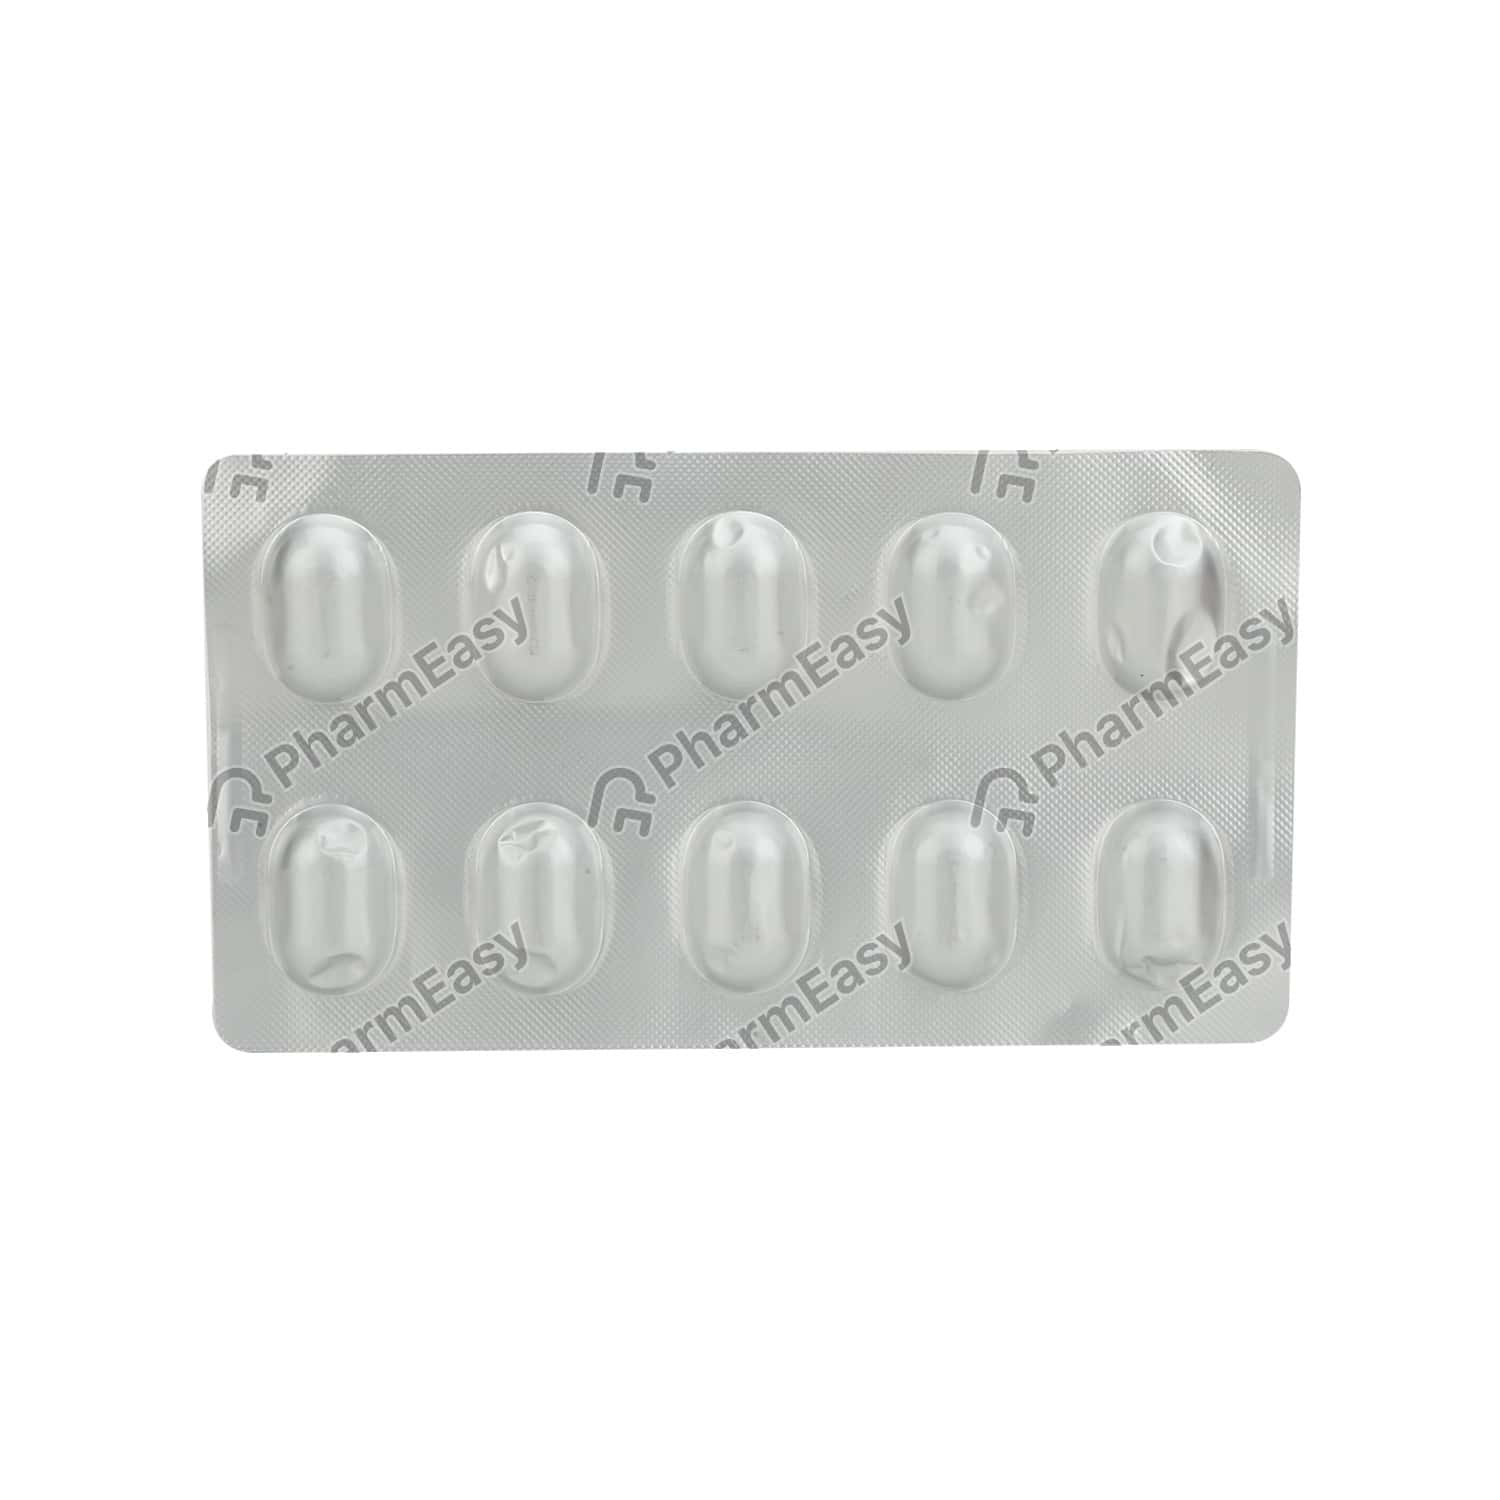 Ddr 30mg Cap